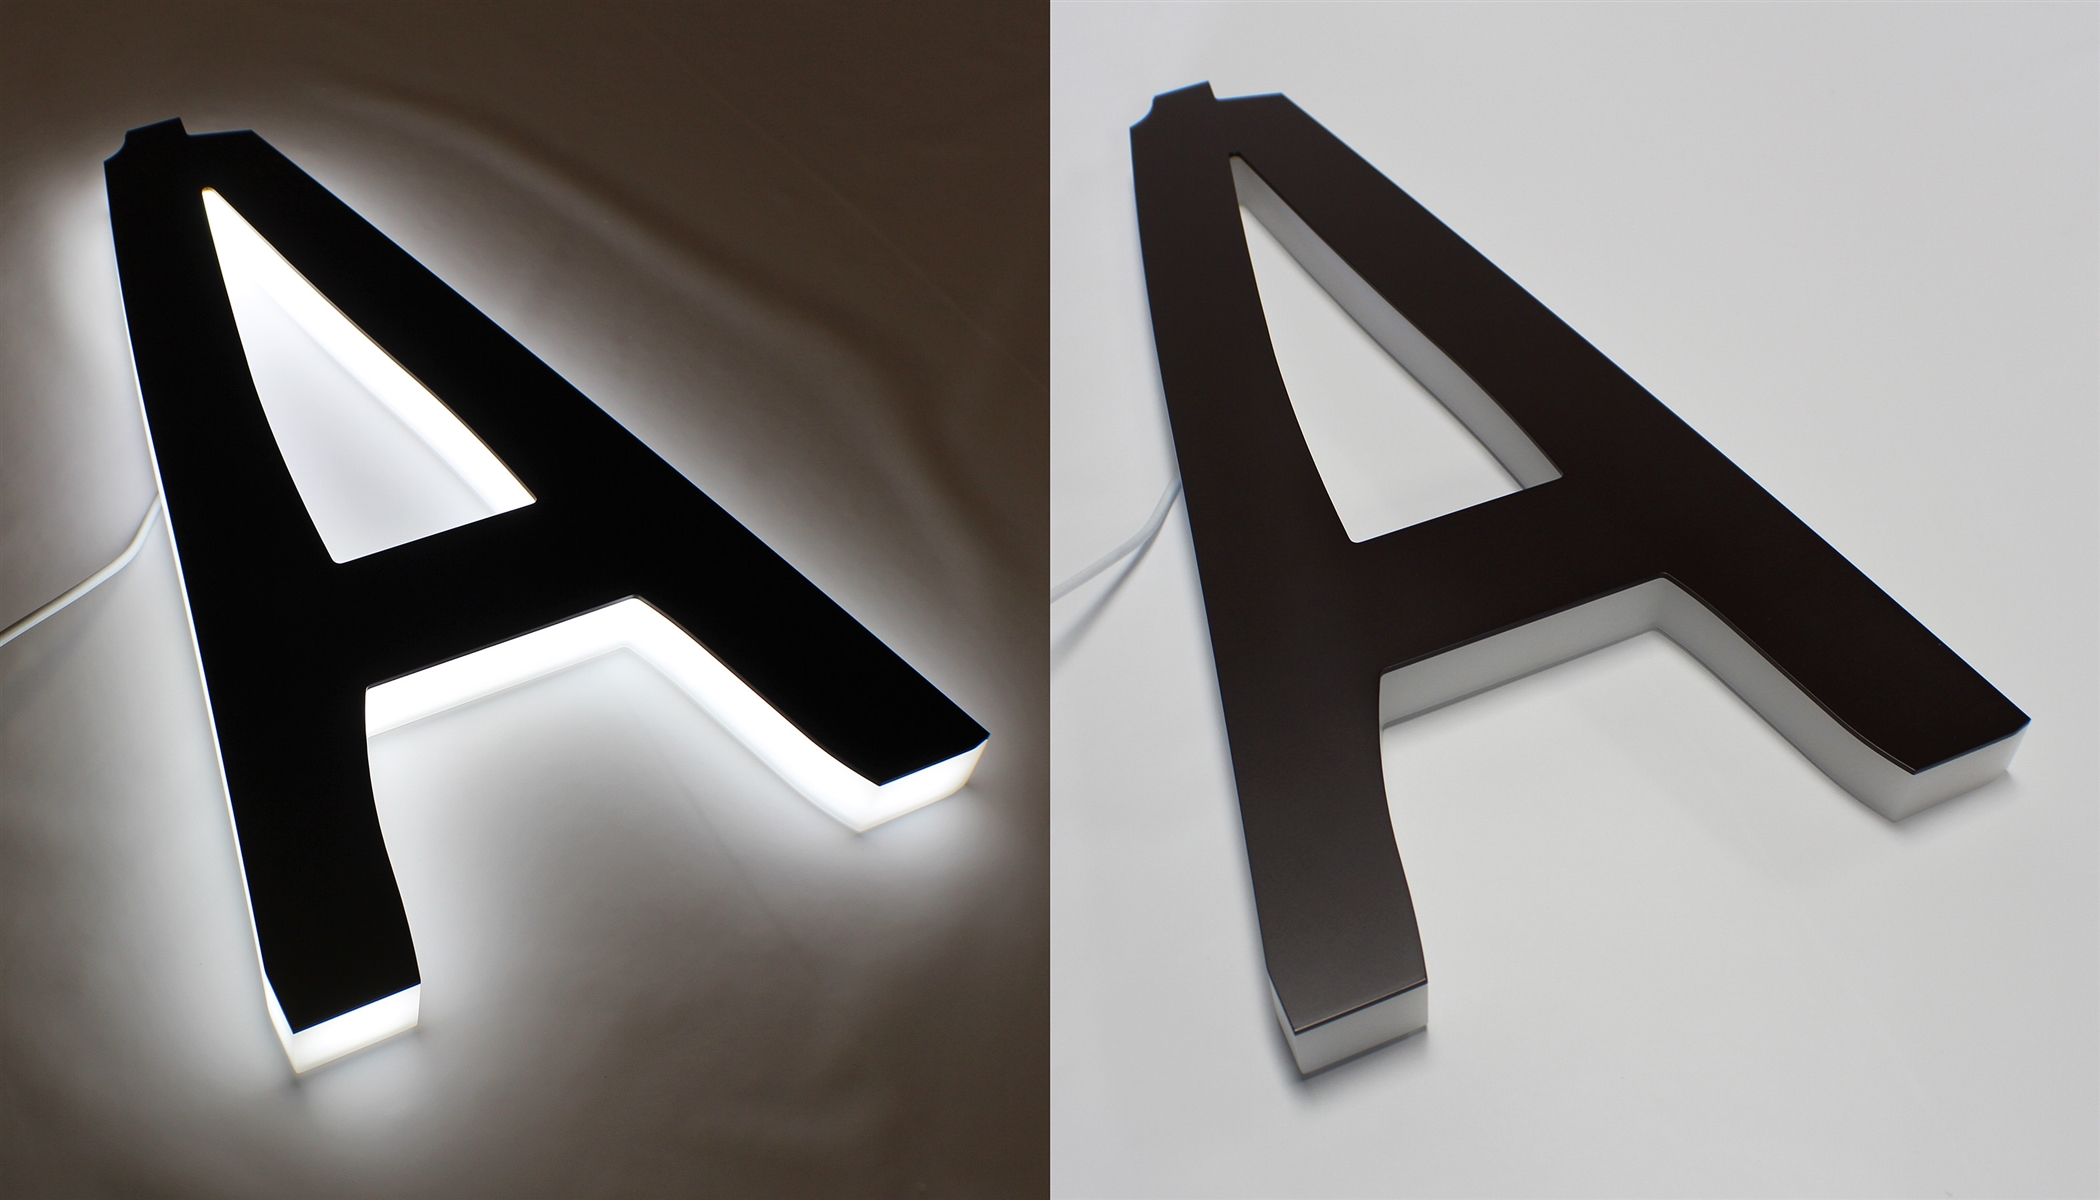 Full Lit 3d Acrylic Letters For Indoor  U0026 Outdoor Signage